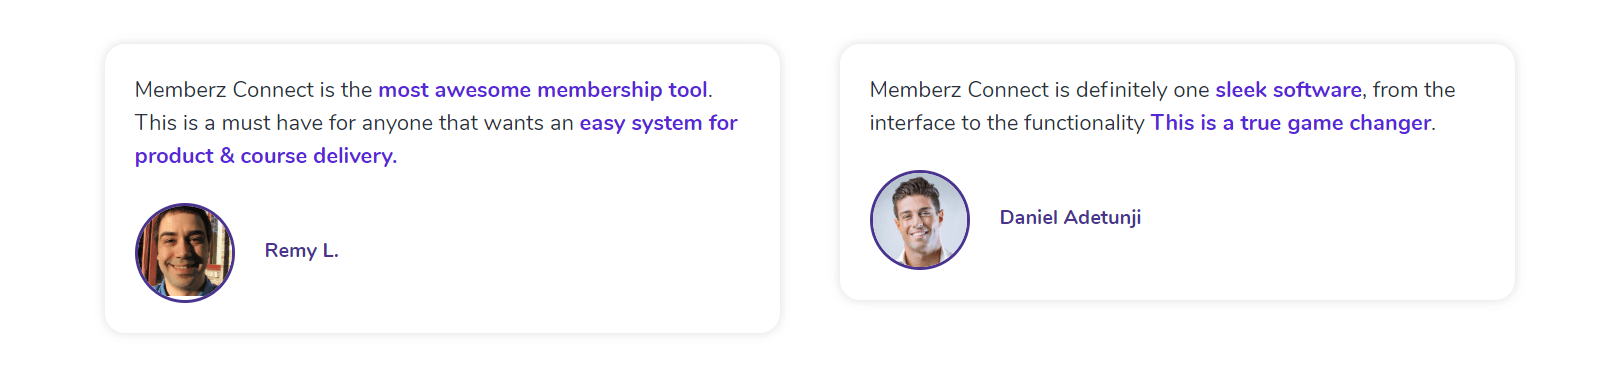 MemberZ-Connect-Review-2